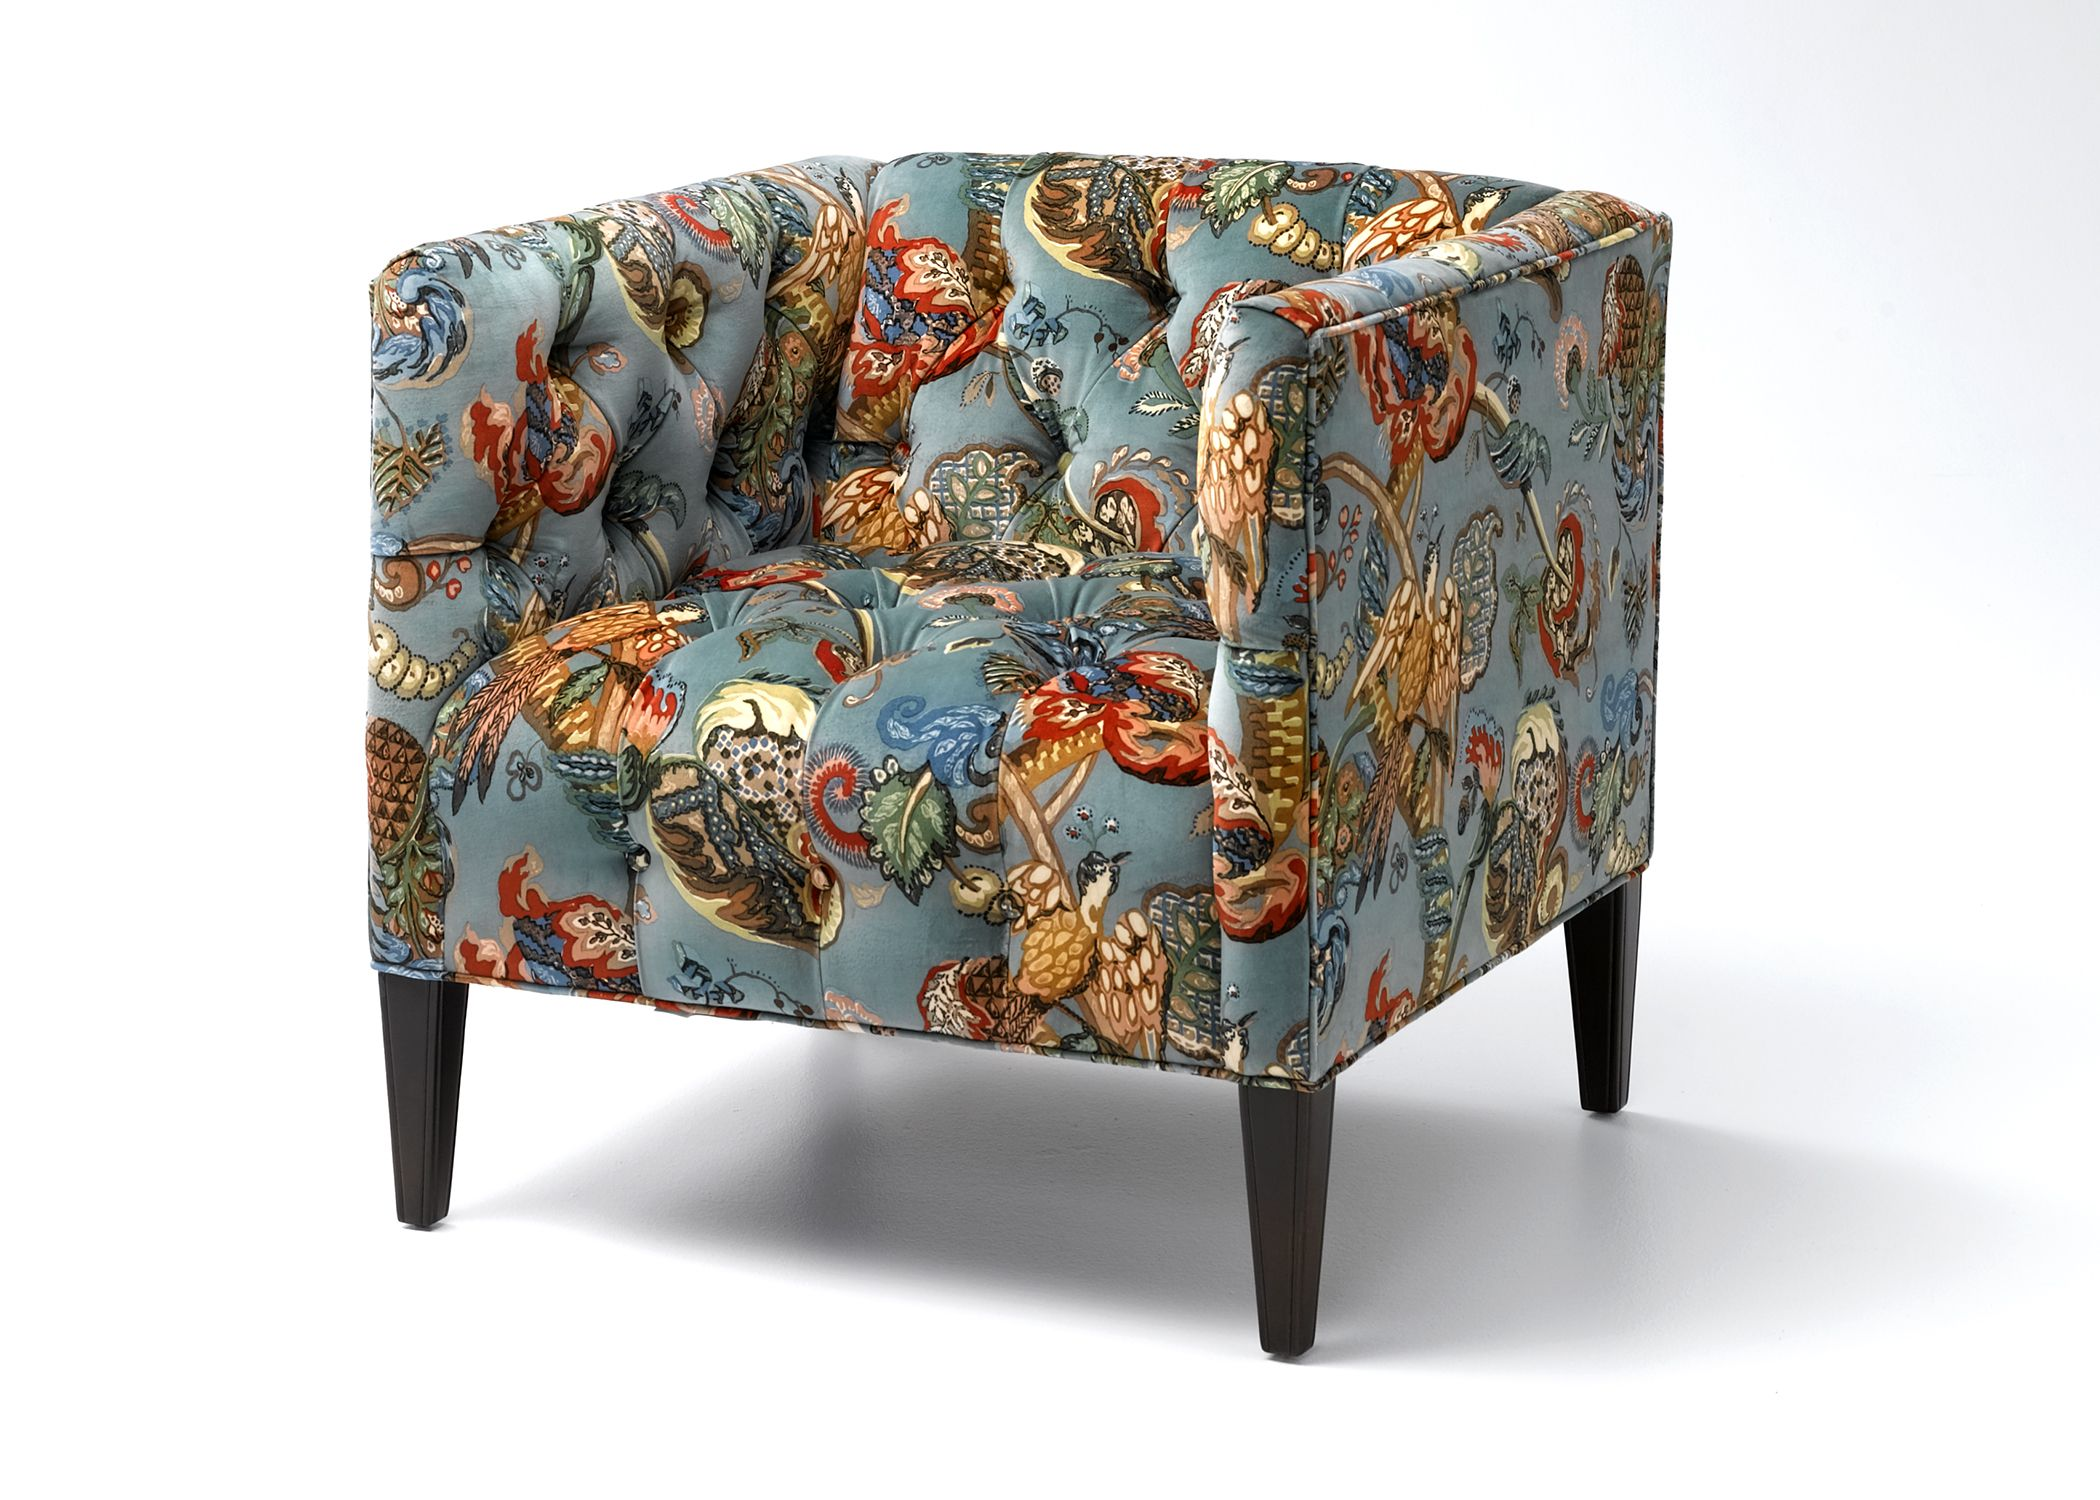 Wesley Hall Keyhaven Chair in an exclusive European print on